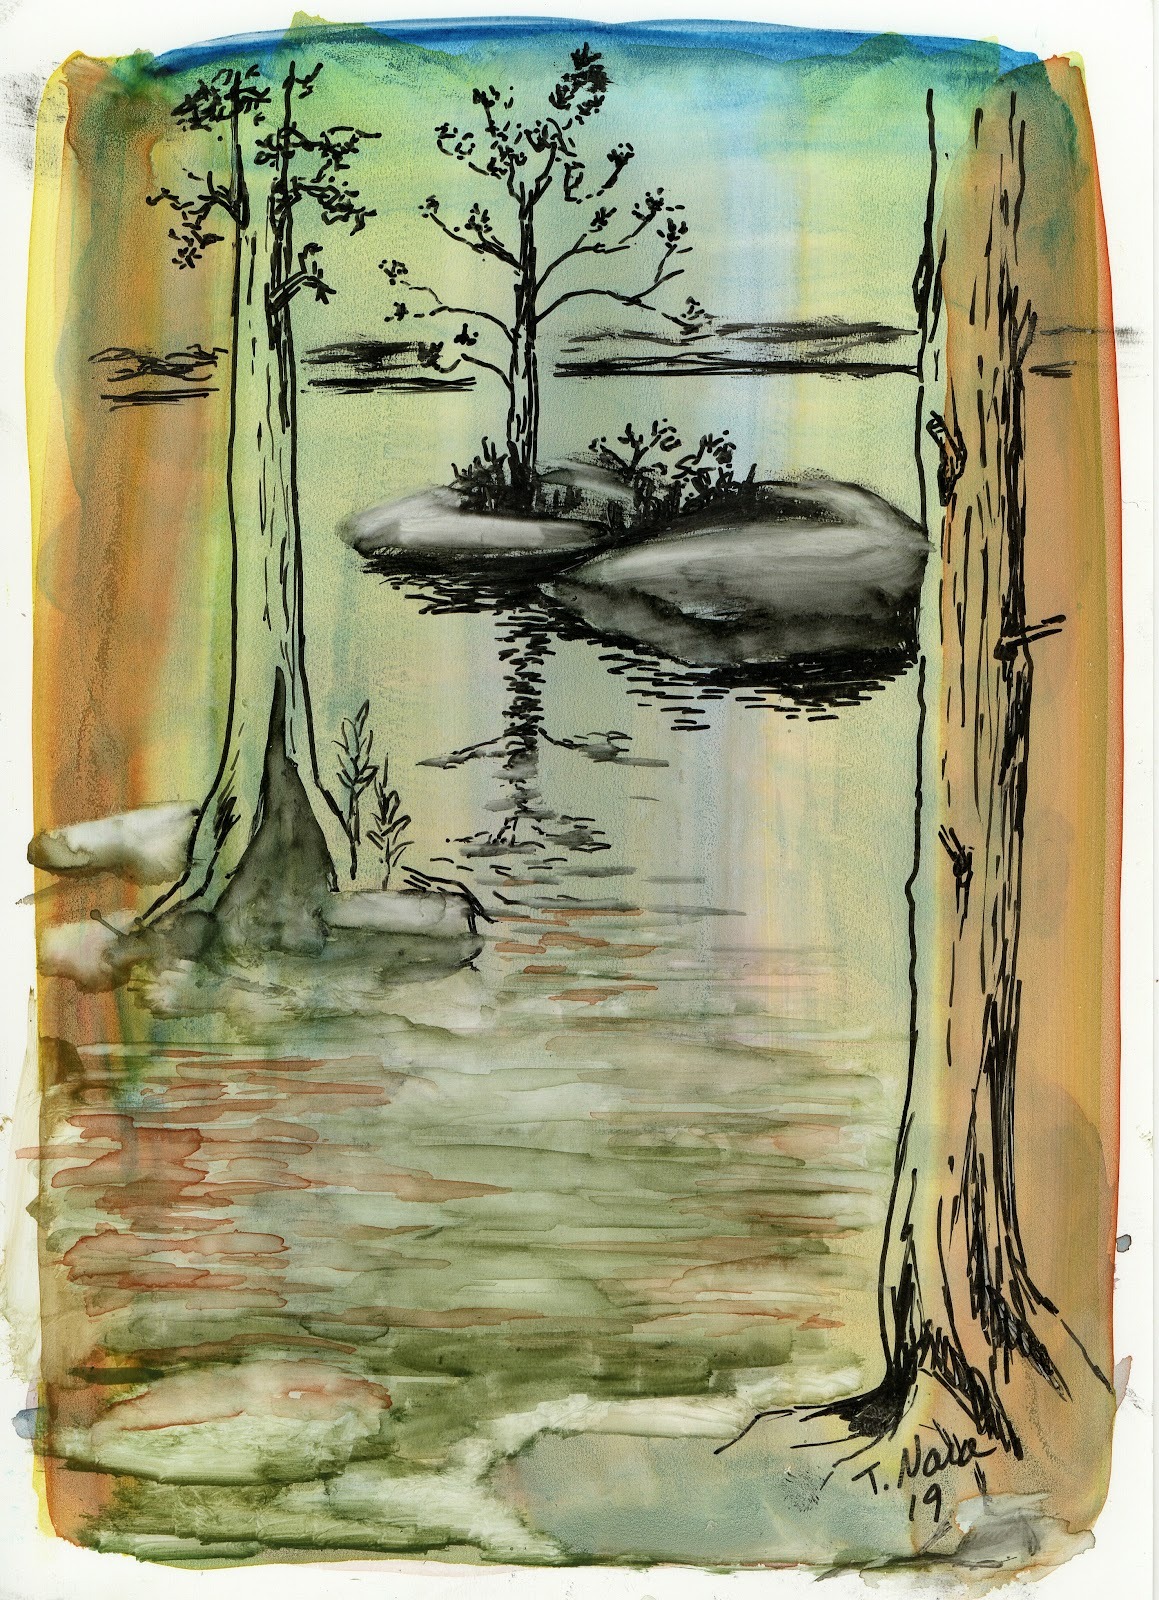 landscape painting tan tree trunks, and a small island